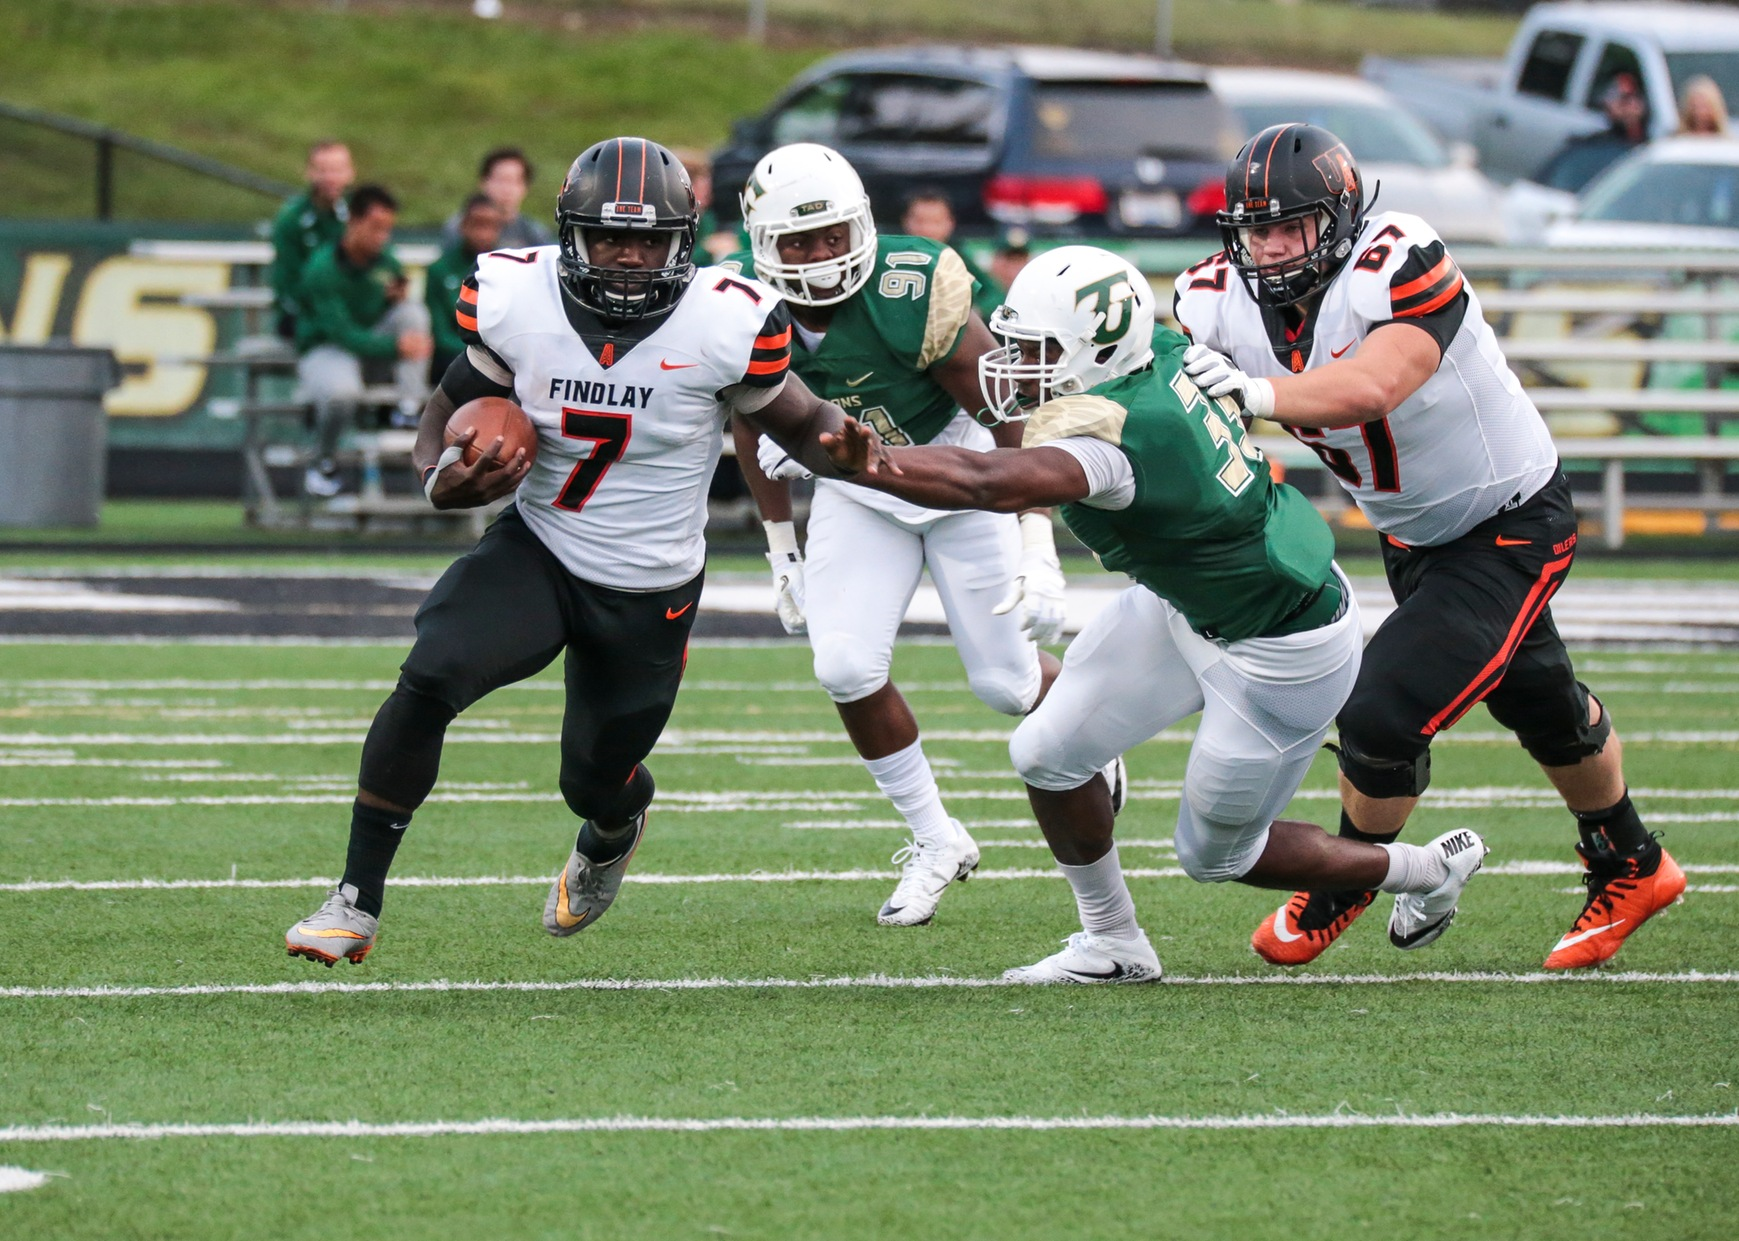 Findlay Wins 18th Straight Against Tiffin